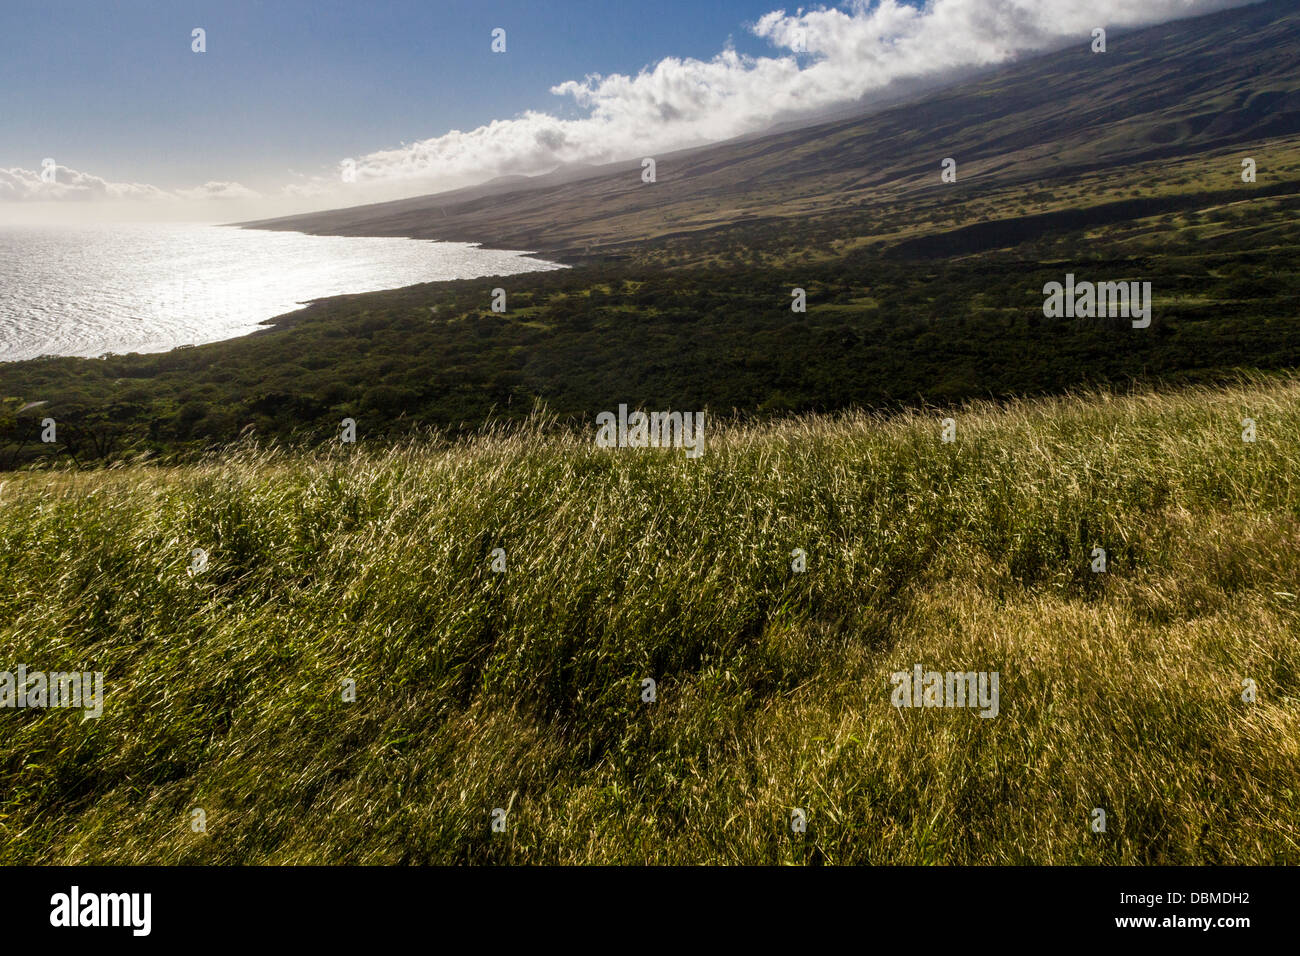 Piilani Stock Photos & Piilani Stock Images - Alamy